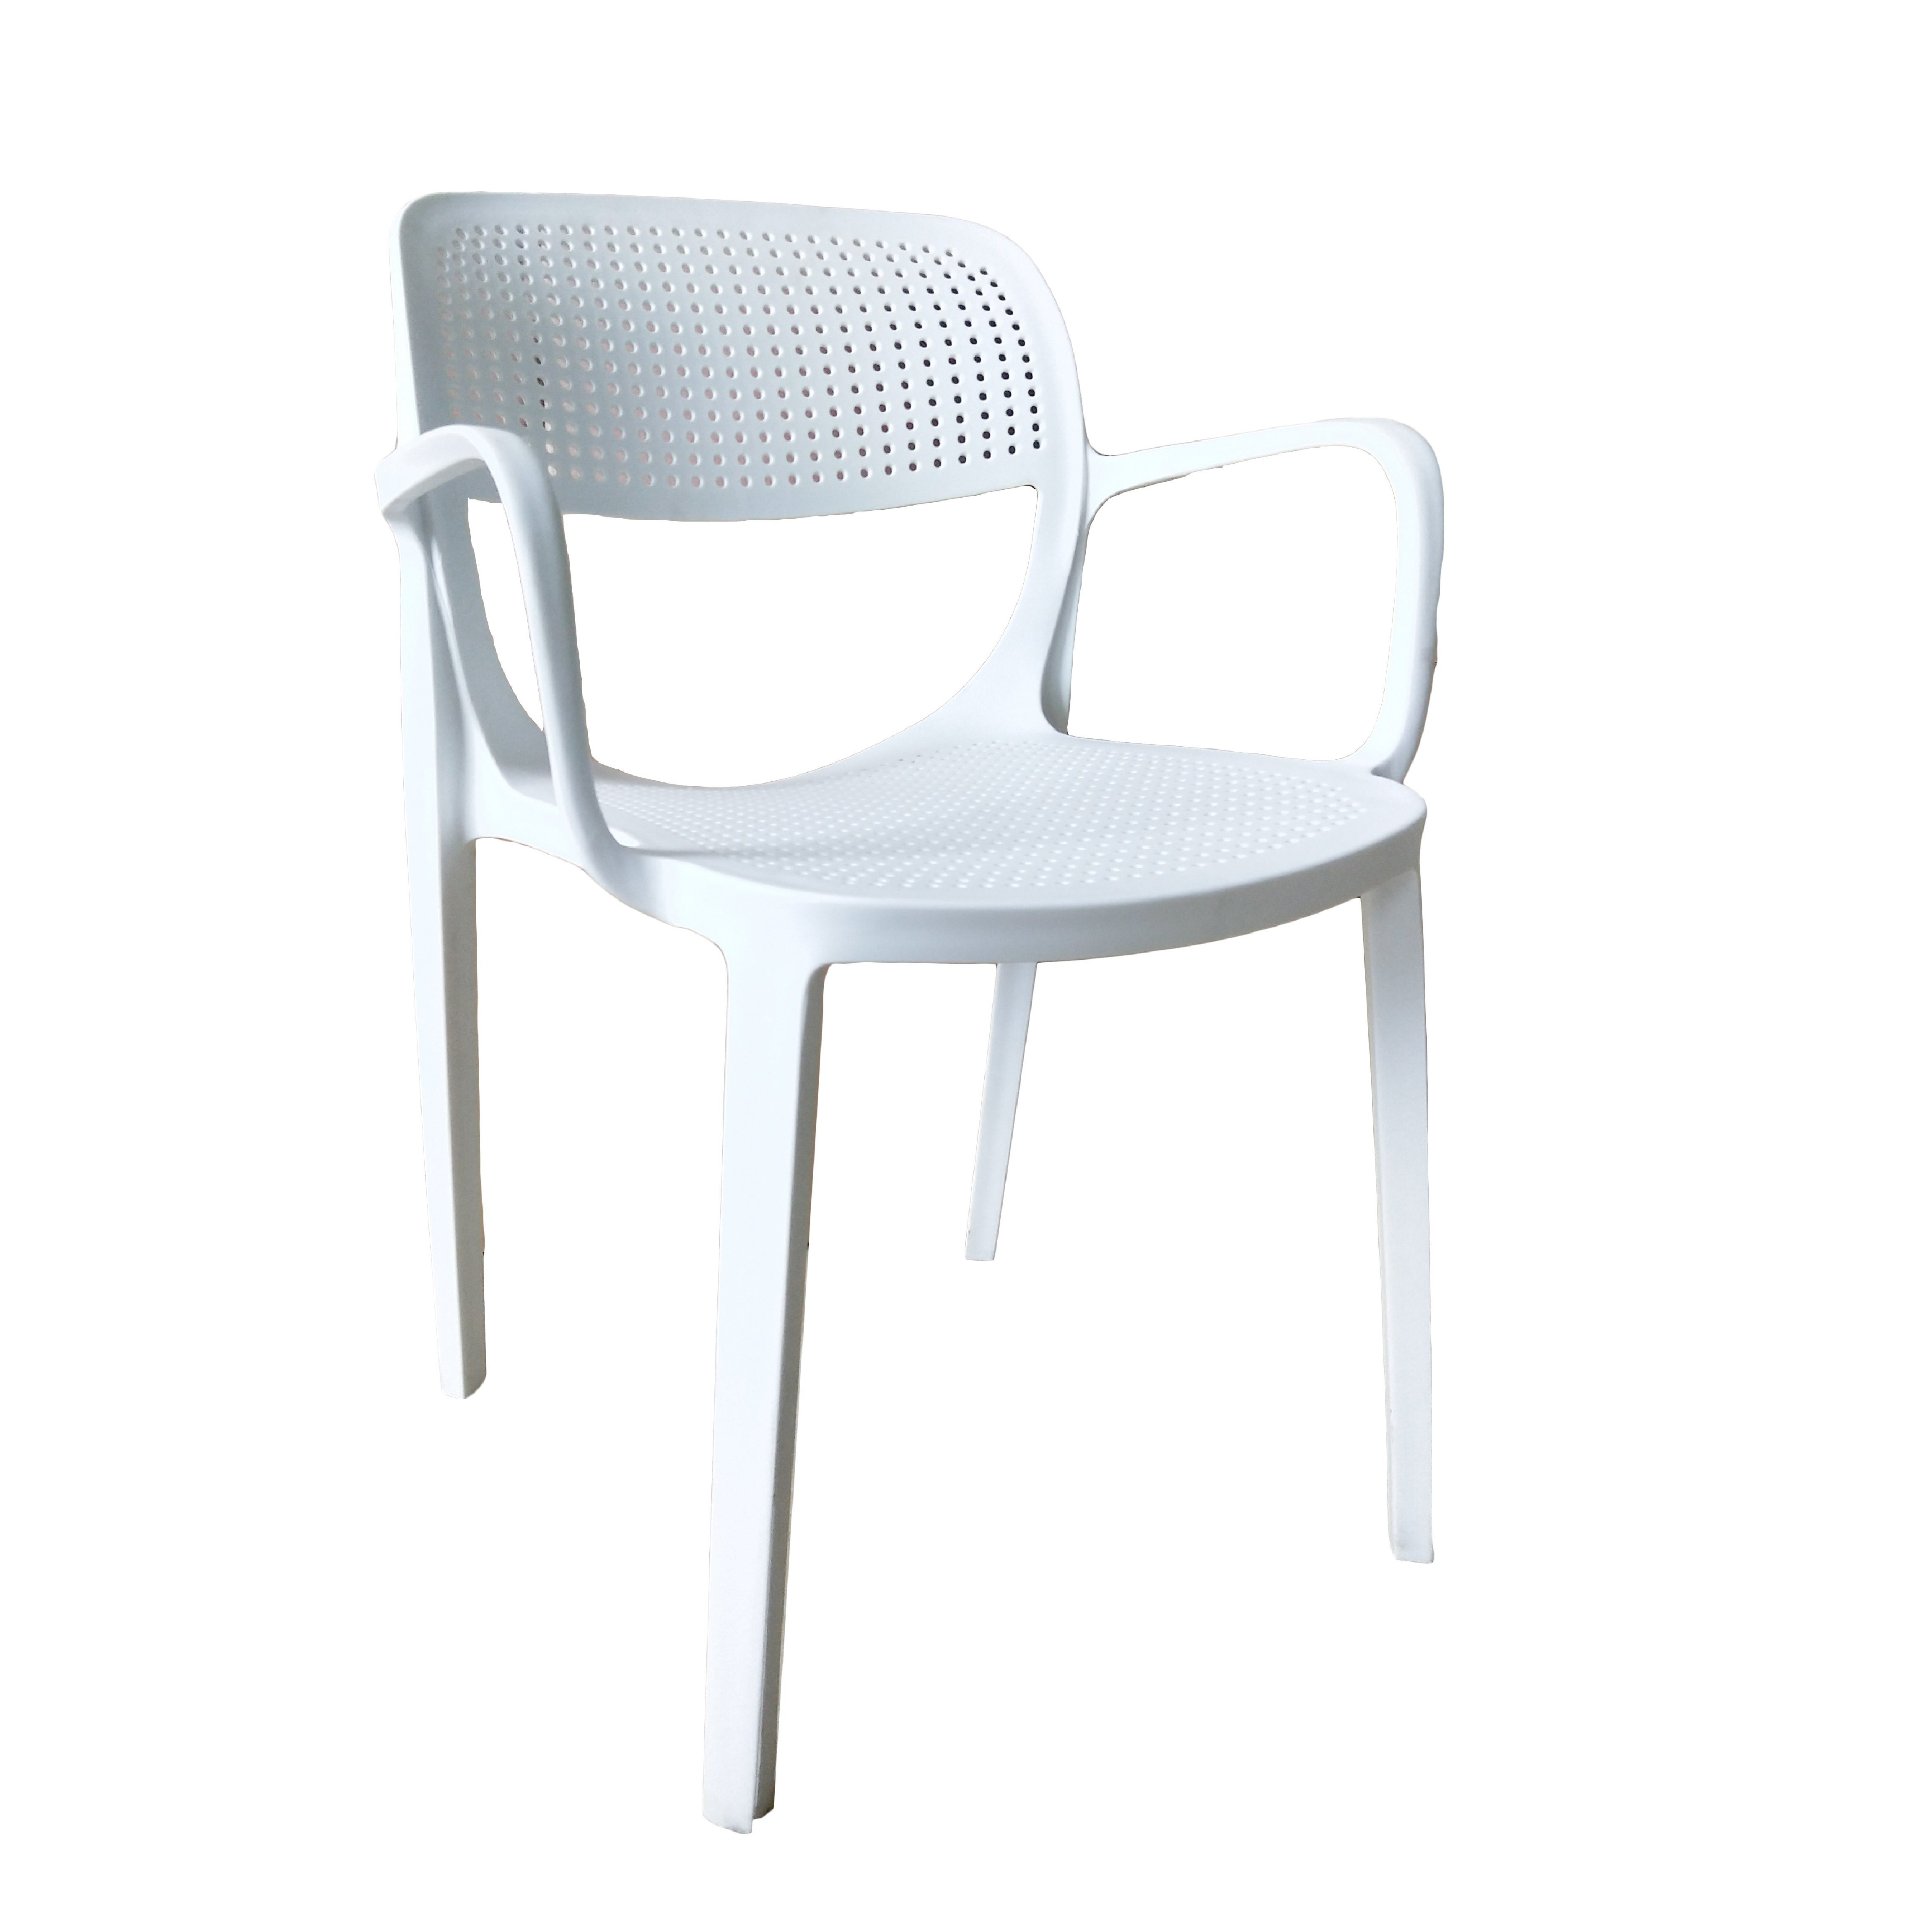 Hot Item White Dining Room Chairs Comfy Armchair Plastic Stacking Stools